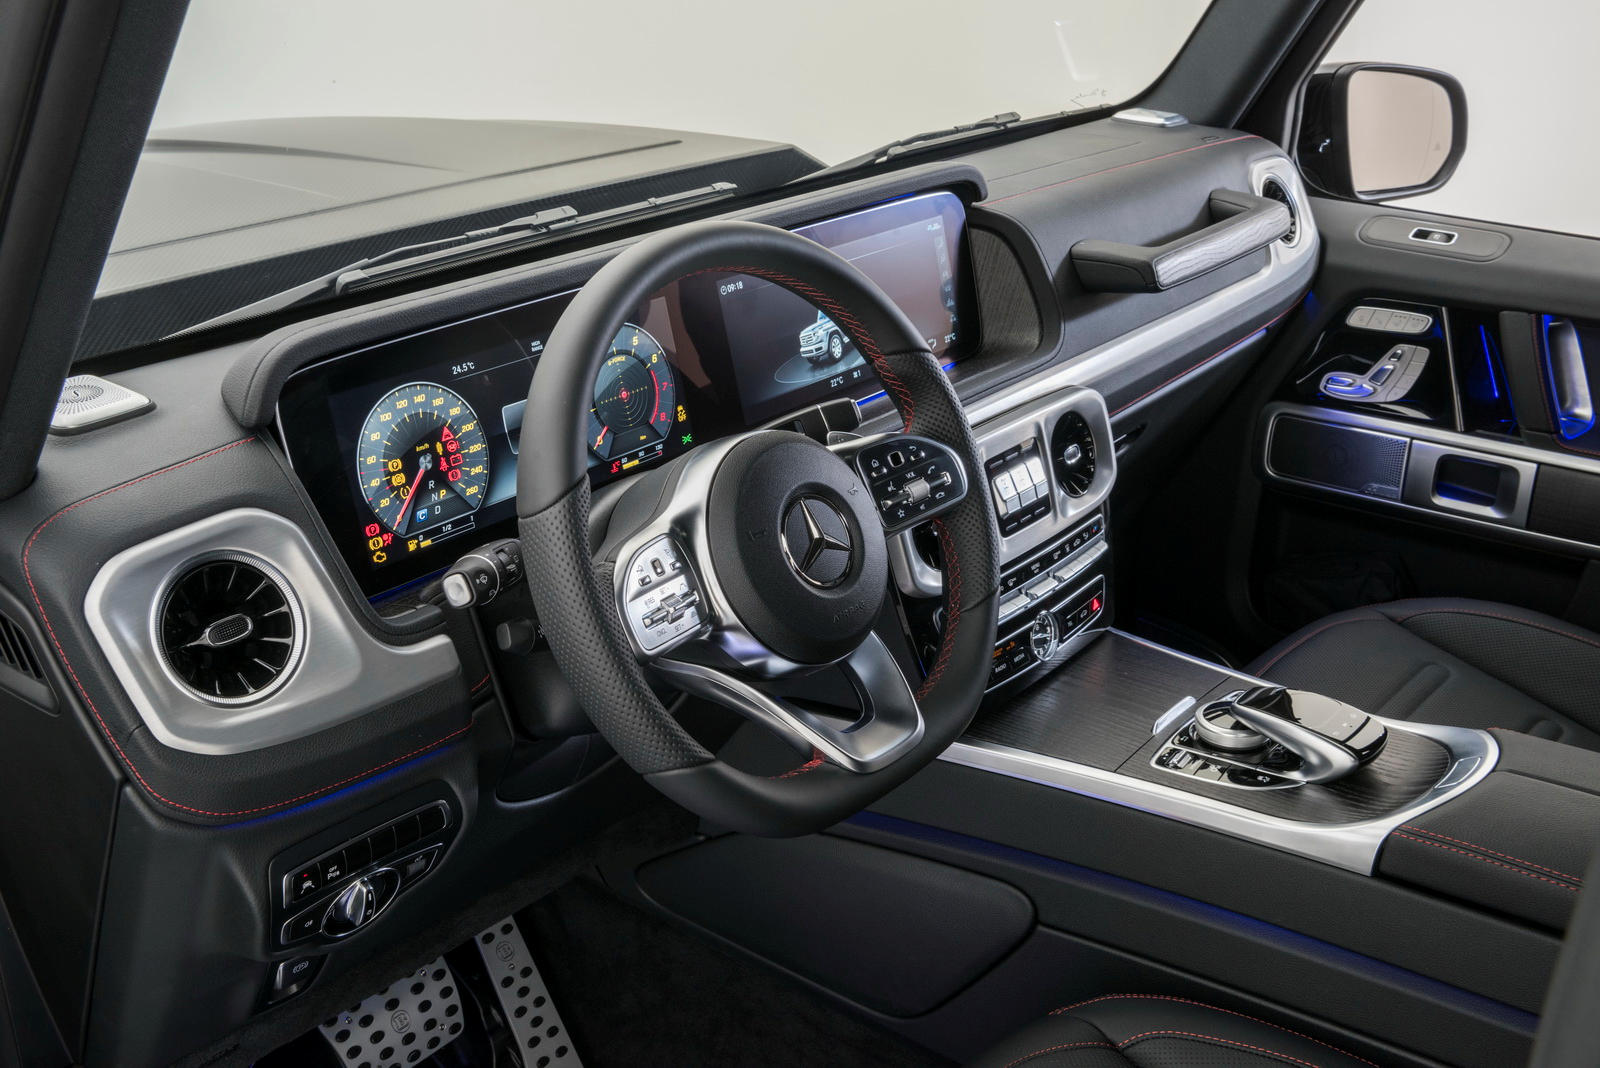 brabus tunes the 2019 mercedes benz g class to nearly 500 hp